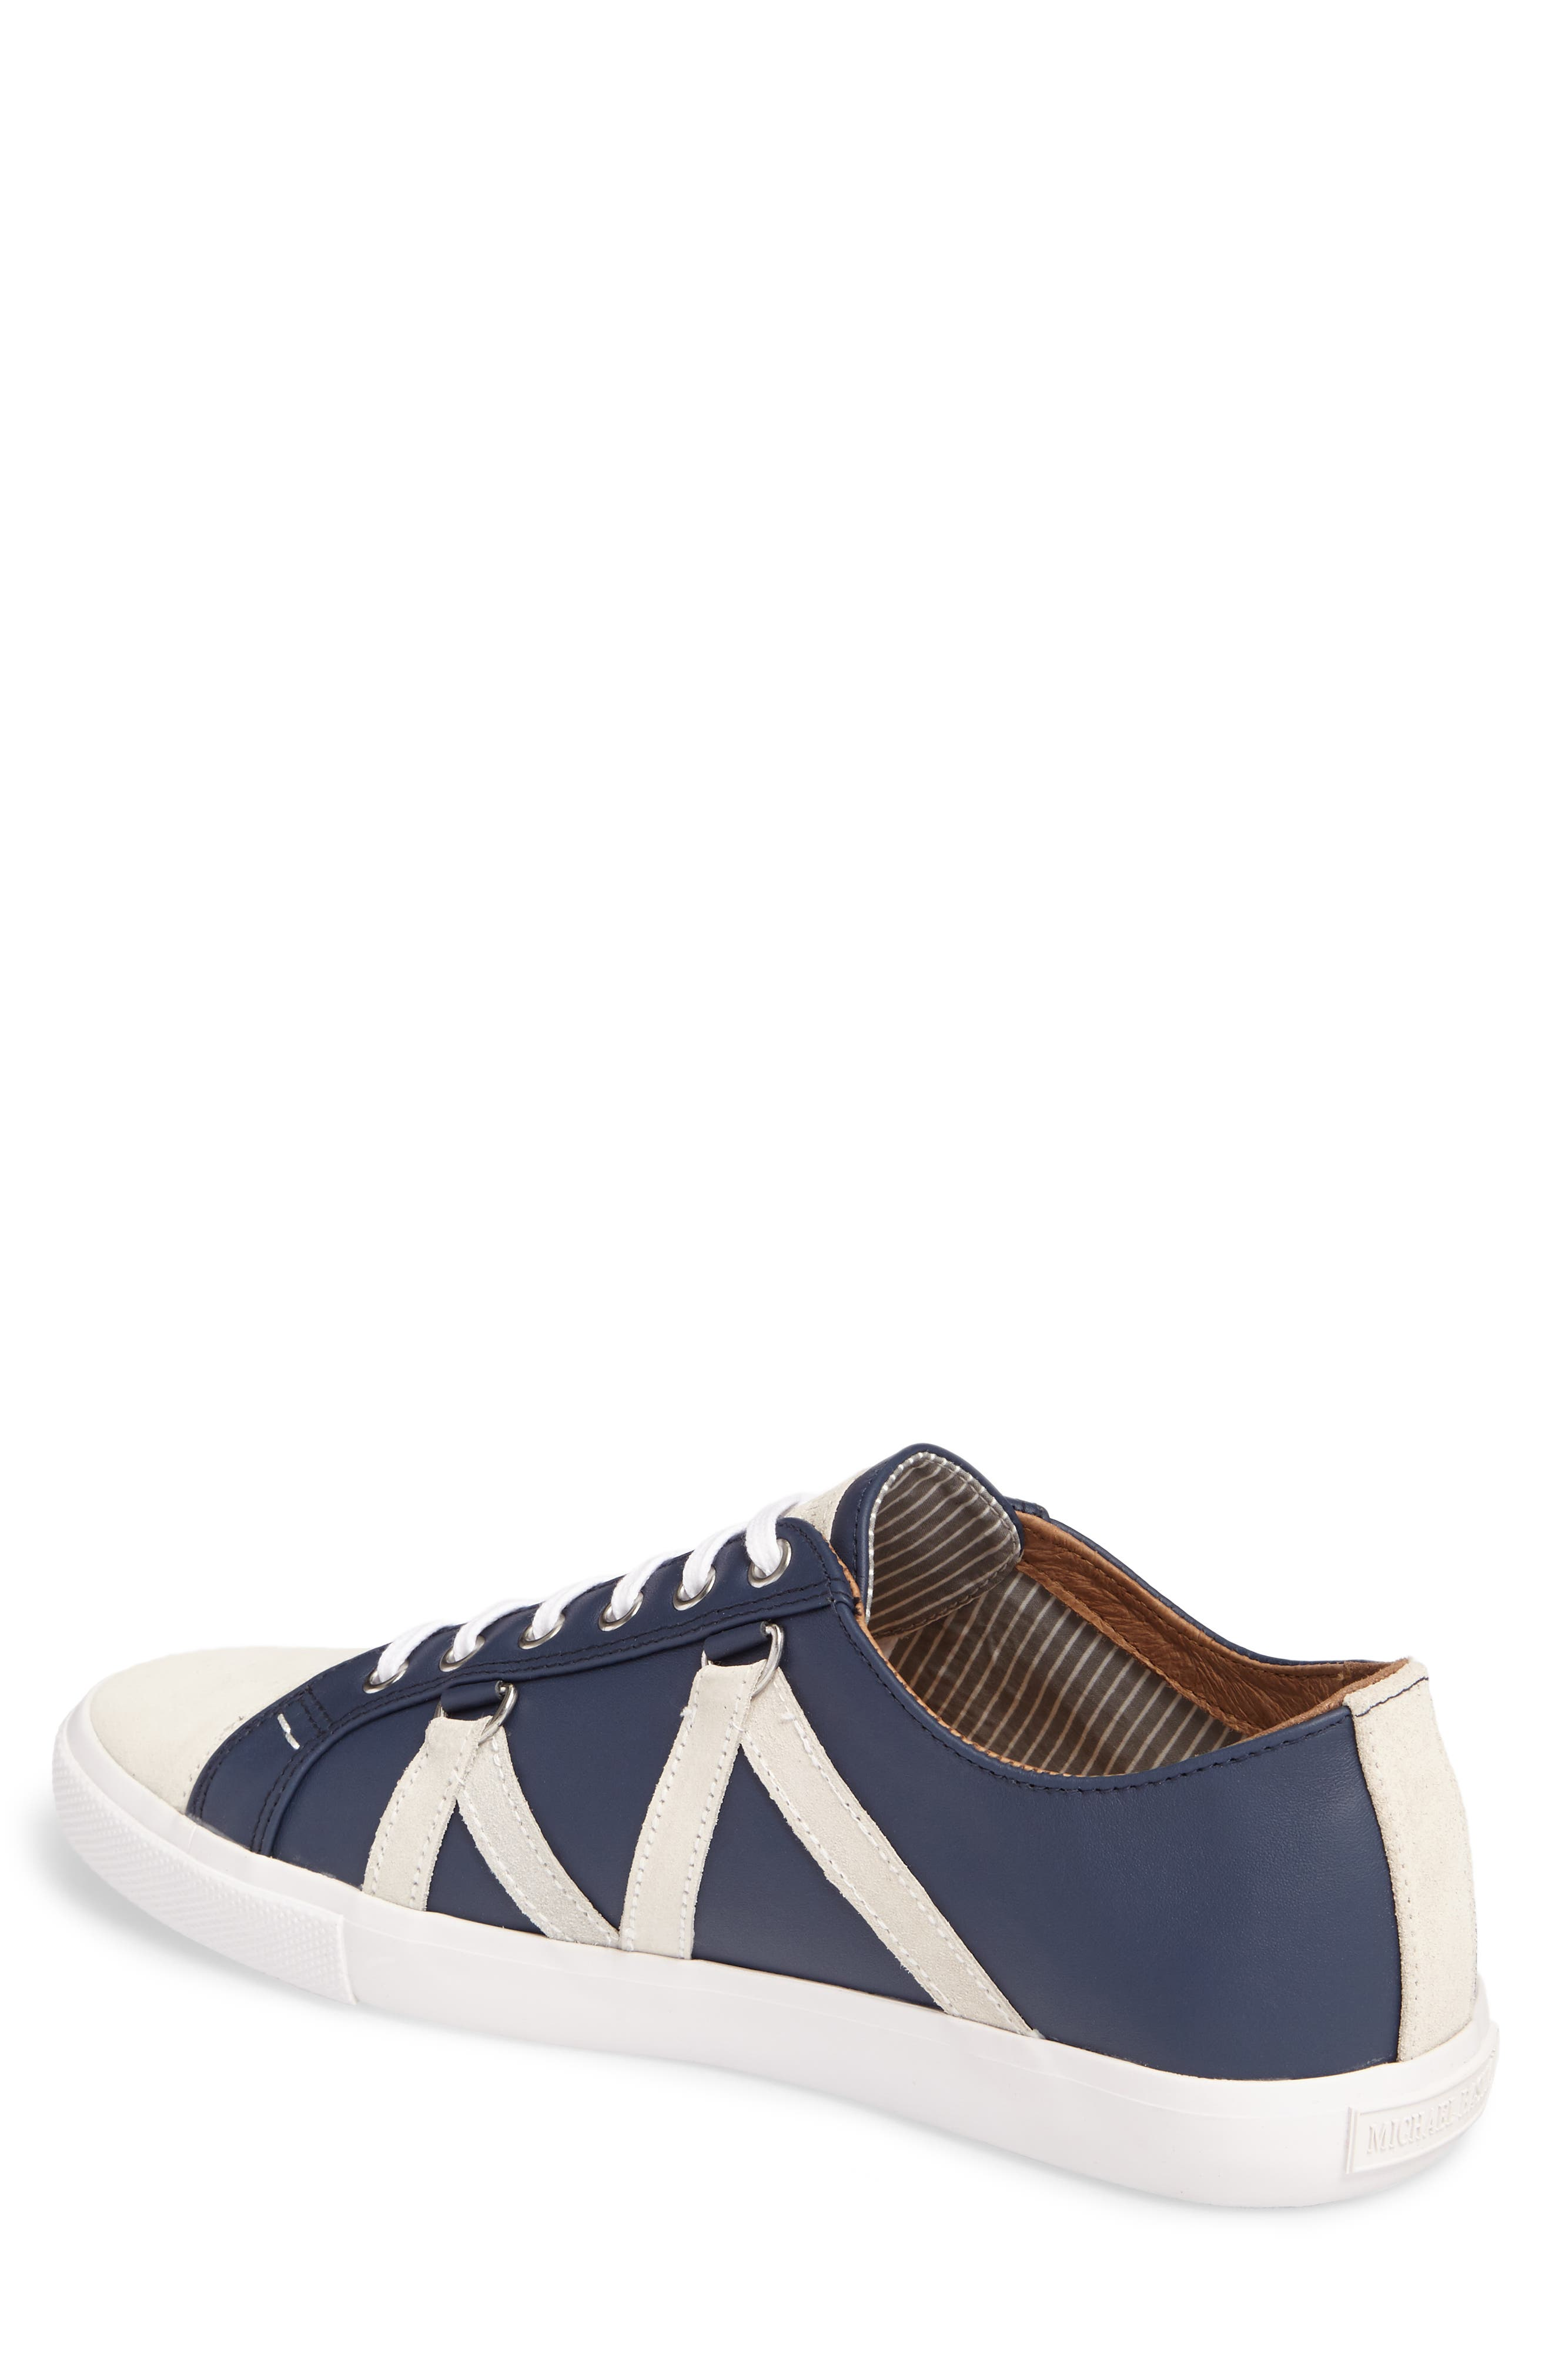 Signature Sneaker,                             Alternate thumbnail 2, color,                             NAVY LEATHER